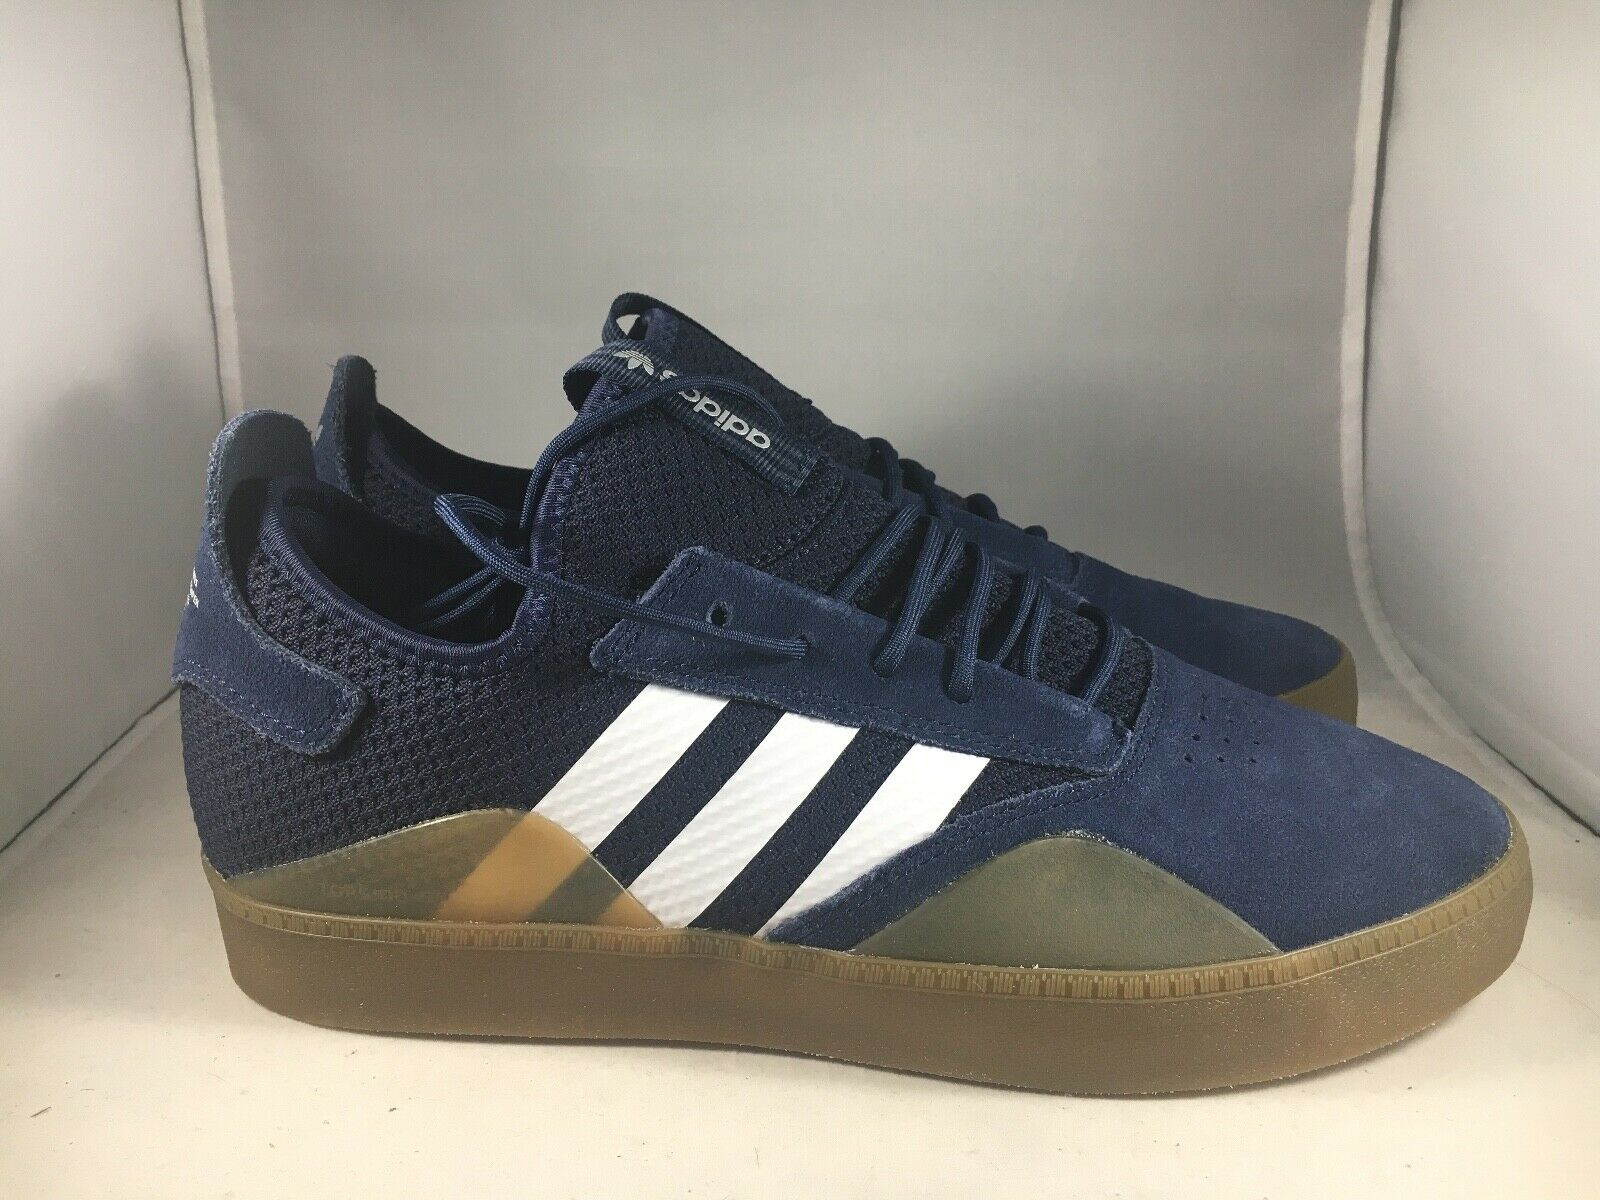 Adidas Originals Navy 3ST.001 shoes Size B41776